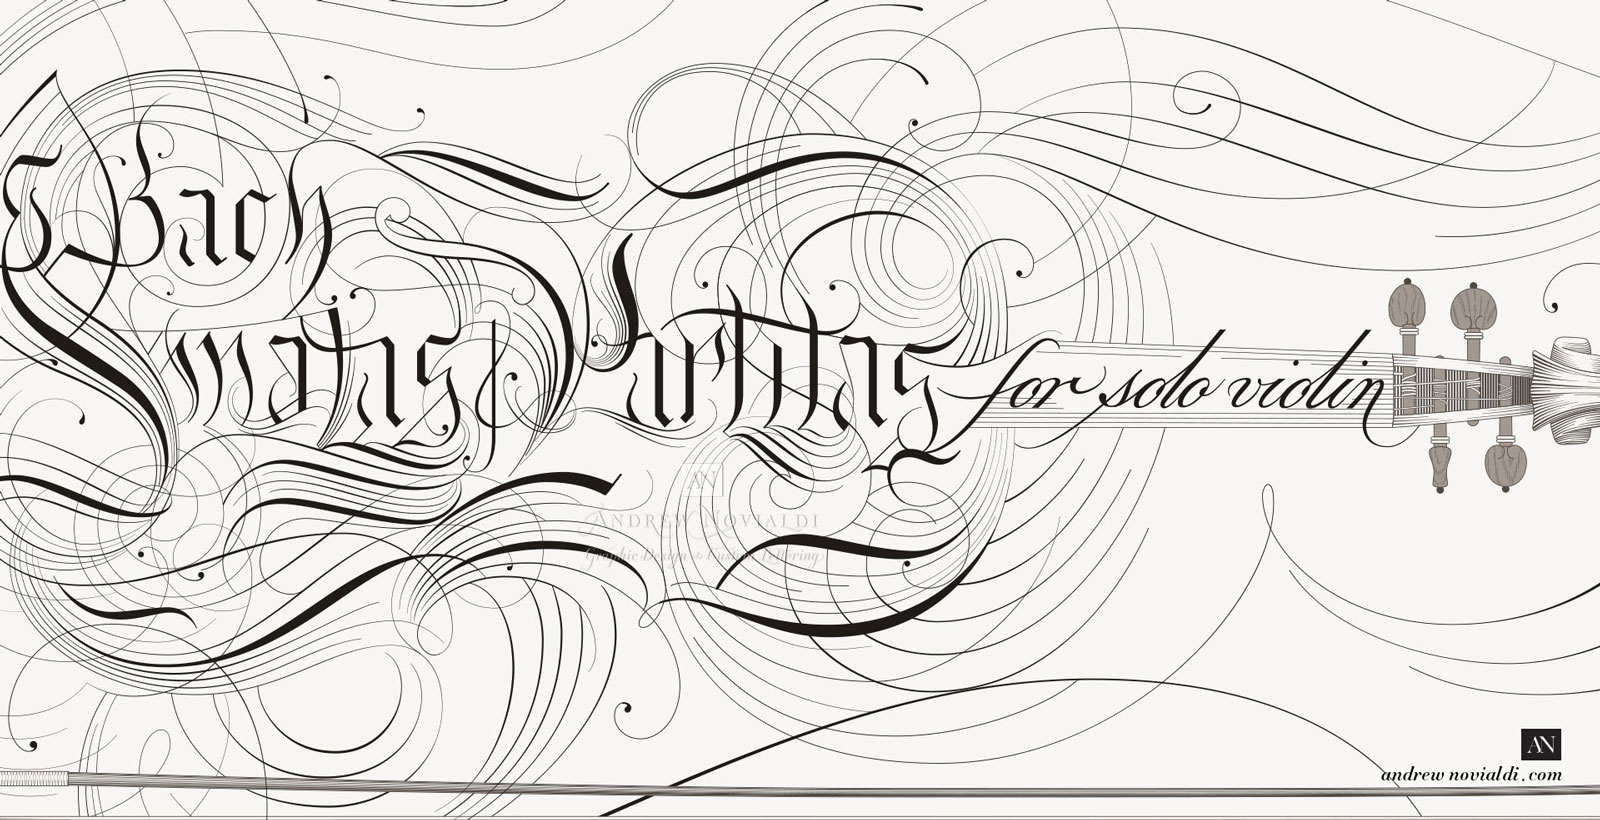 Bach Sonatas and Partitas for Solo Violin Calligraphic Engraved Delicate Flourishing Chaconne Ironwork Design.